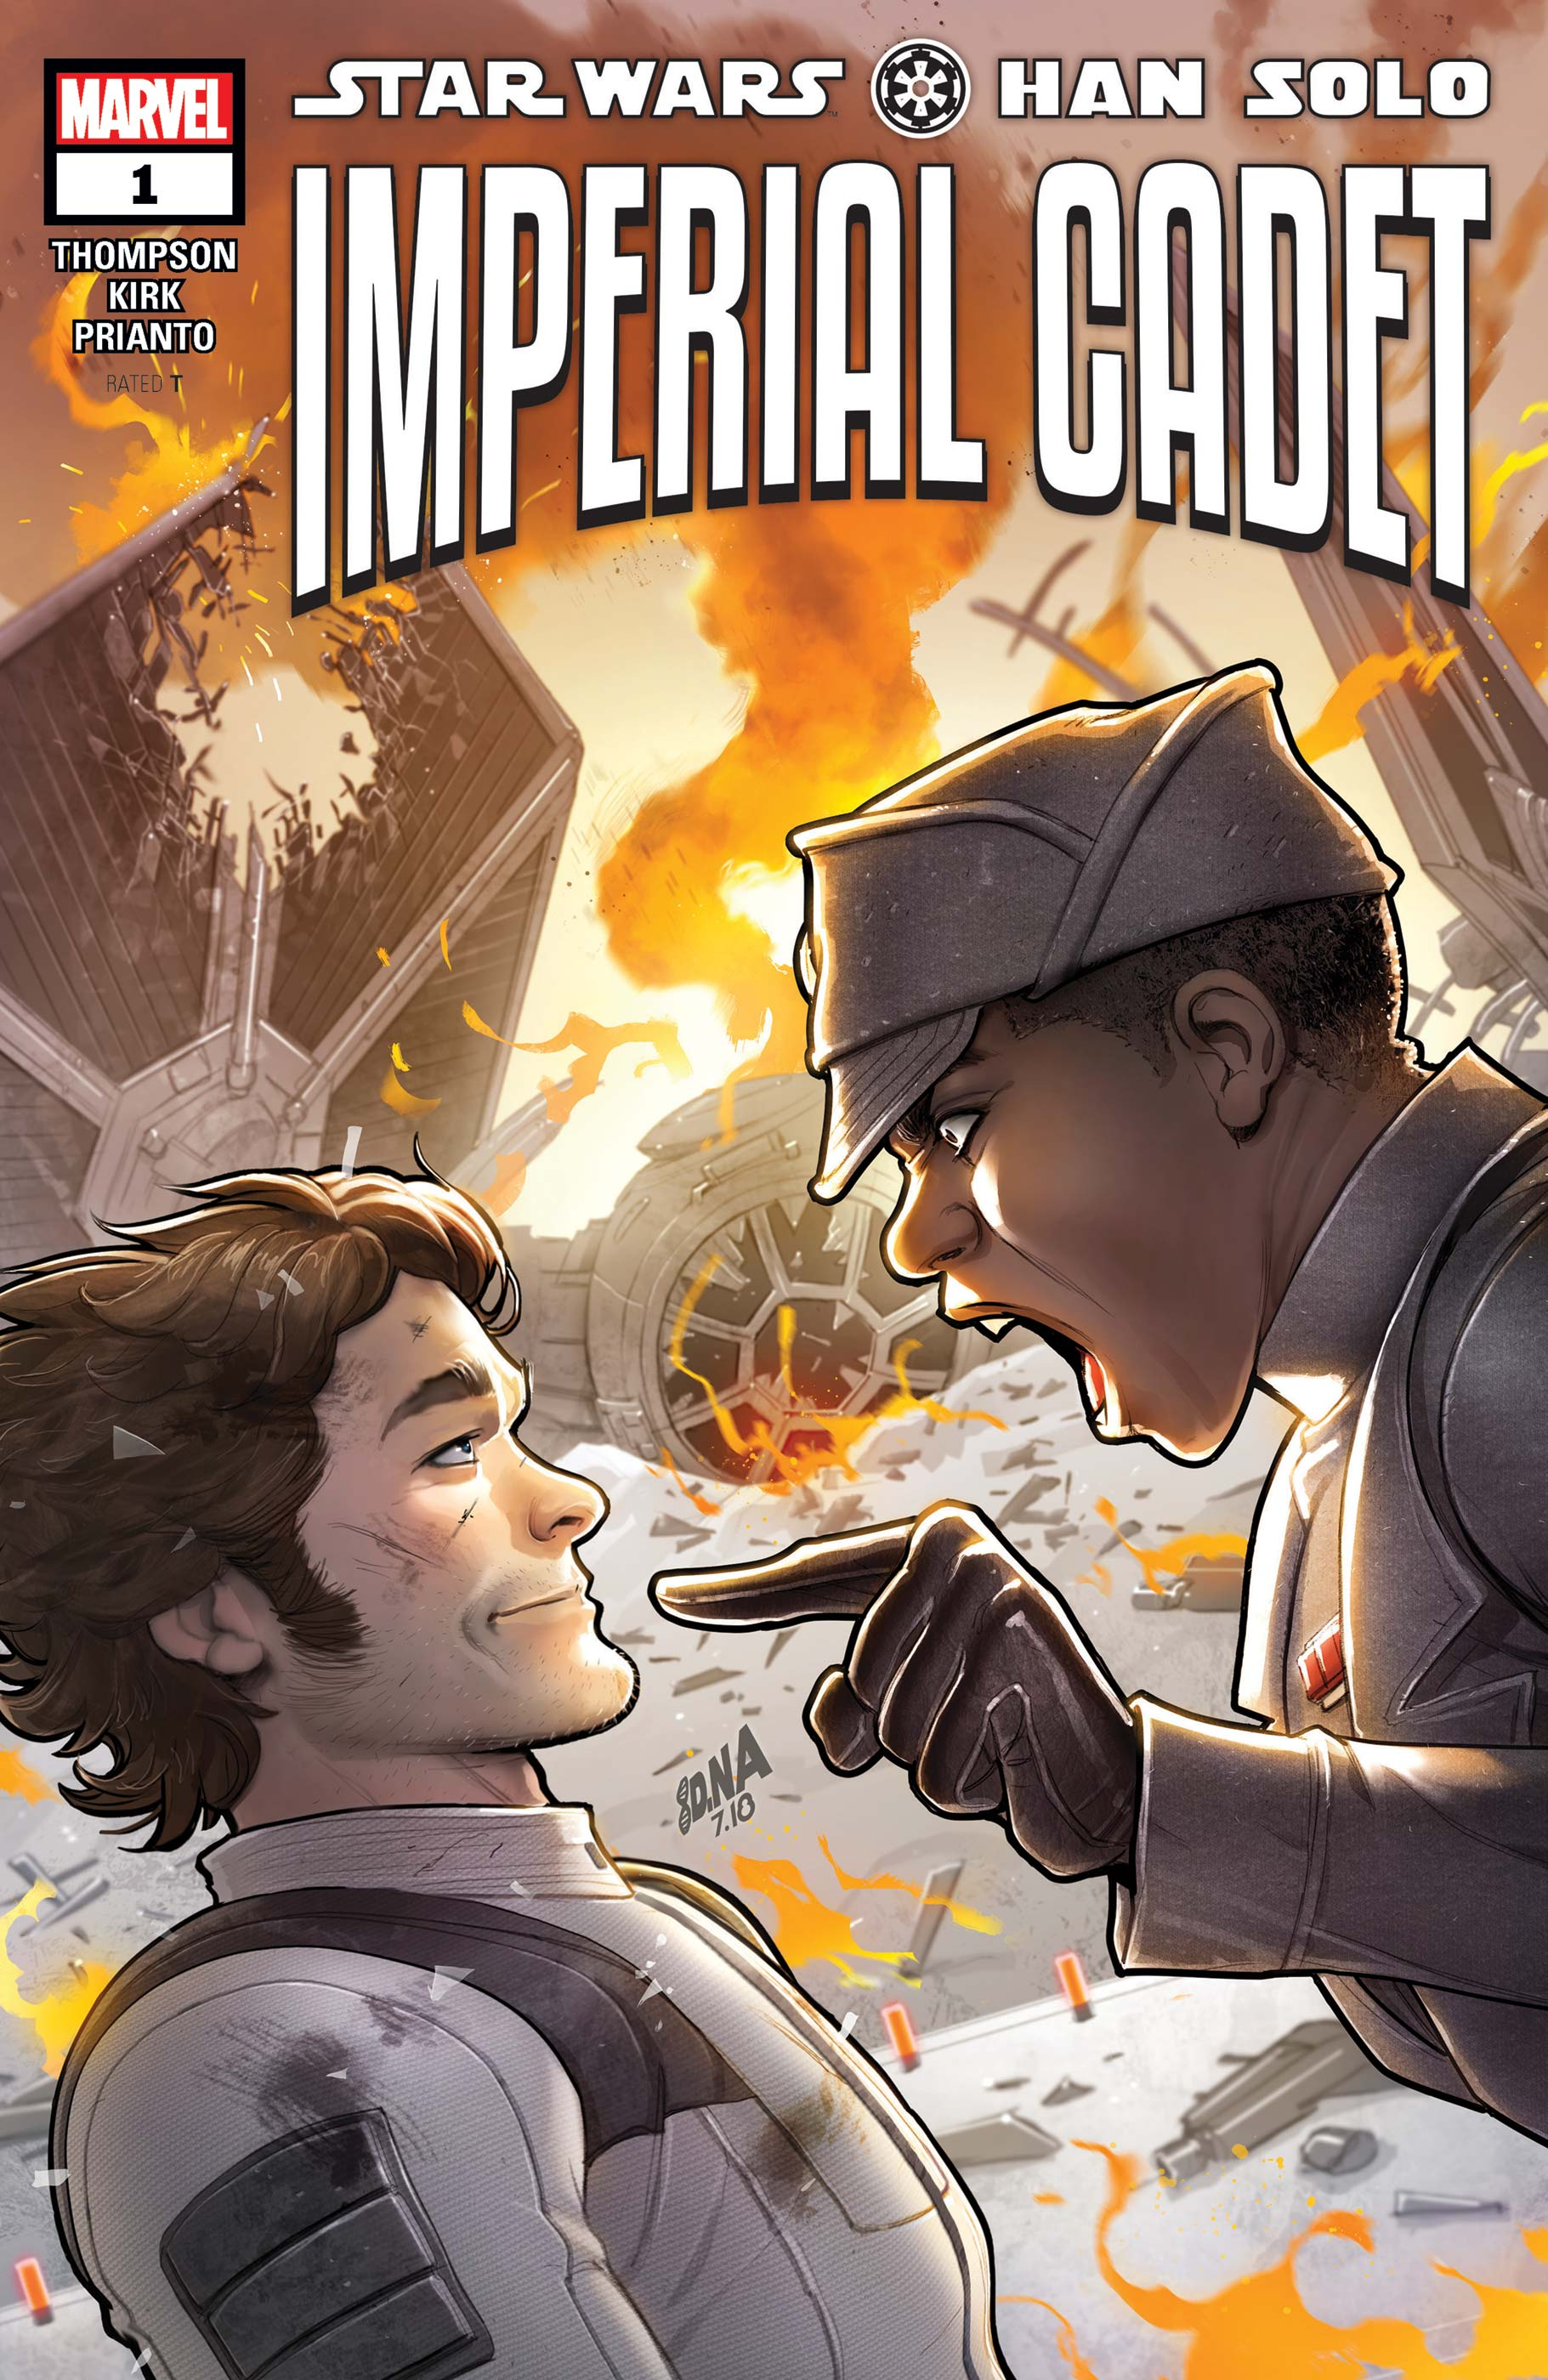 Star Wars: Han Solo - Imperial Cadet (2018) #1